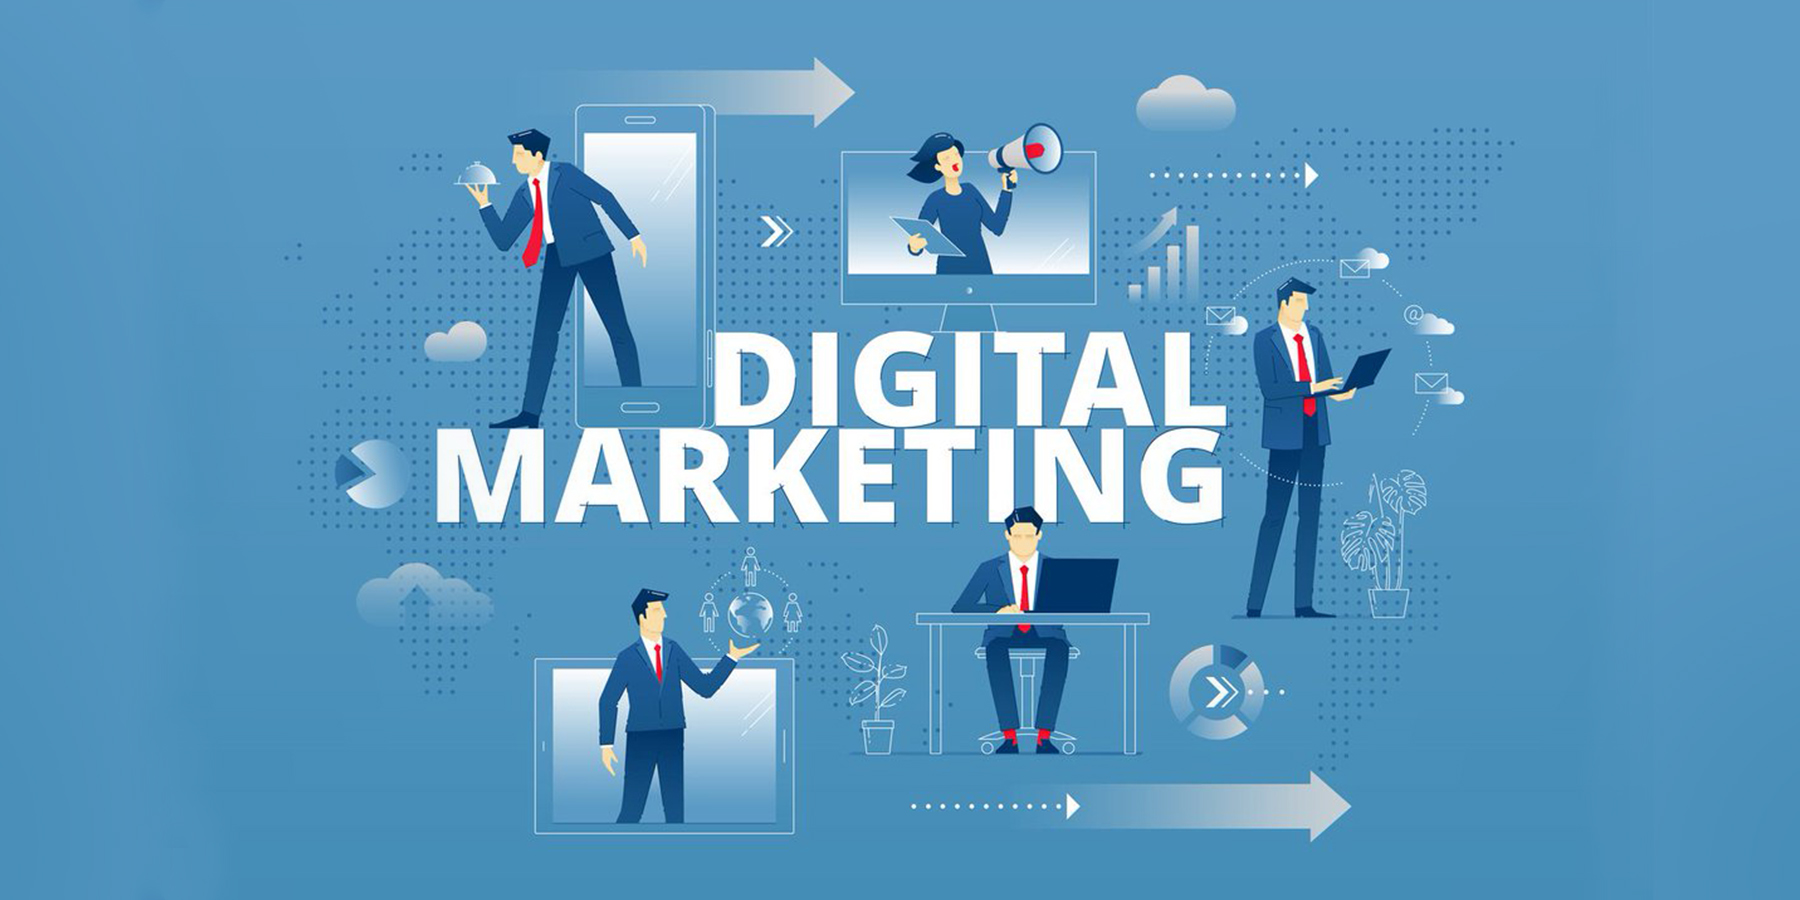 Ways To Hire A Reliable Digital Marketing Agency For Your Business -  Graffiti9 Digital Marketing Agency